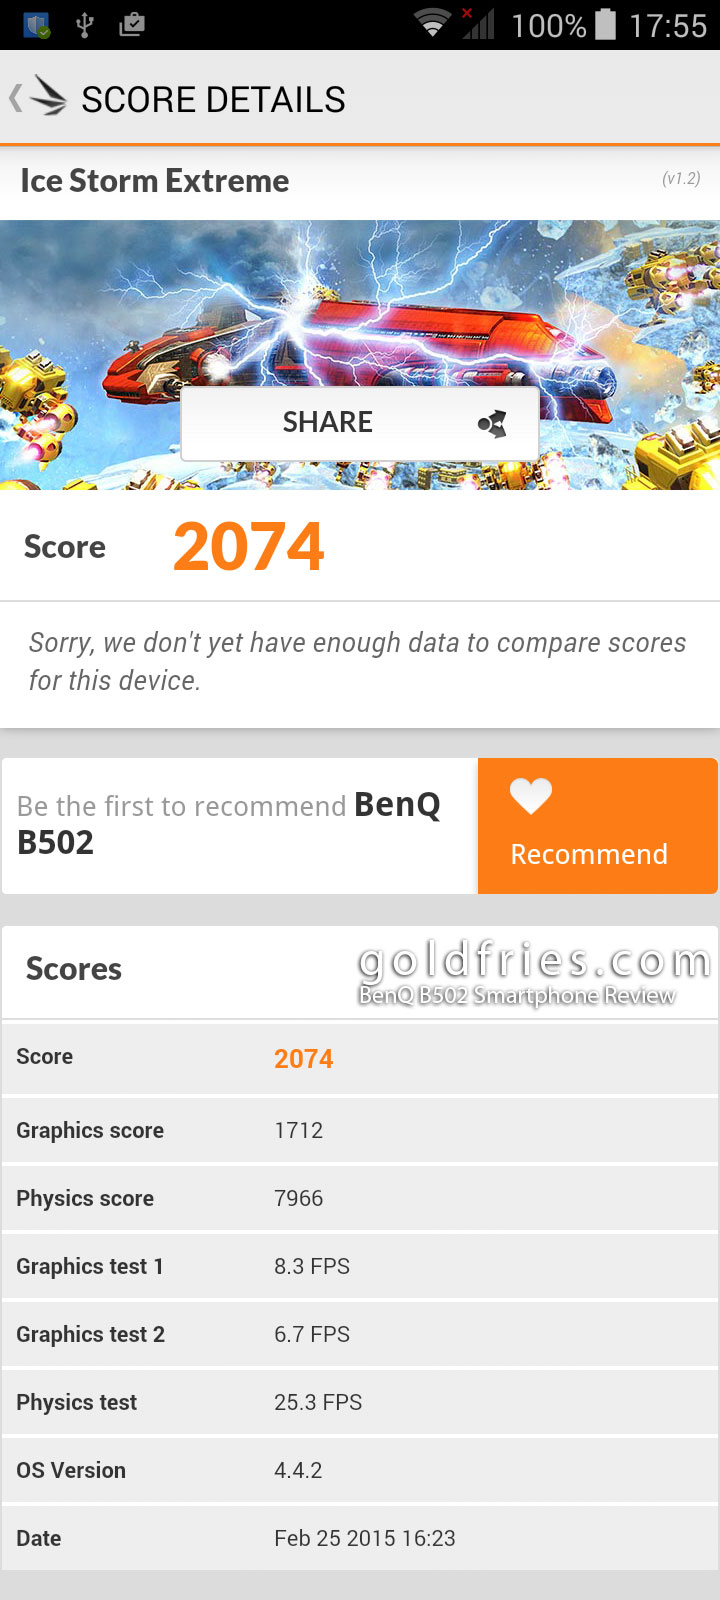 BenQ B502 Smartphone Review